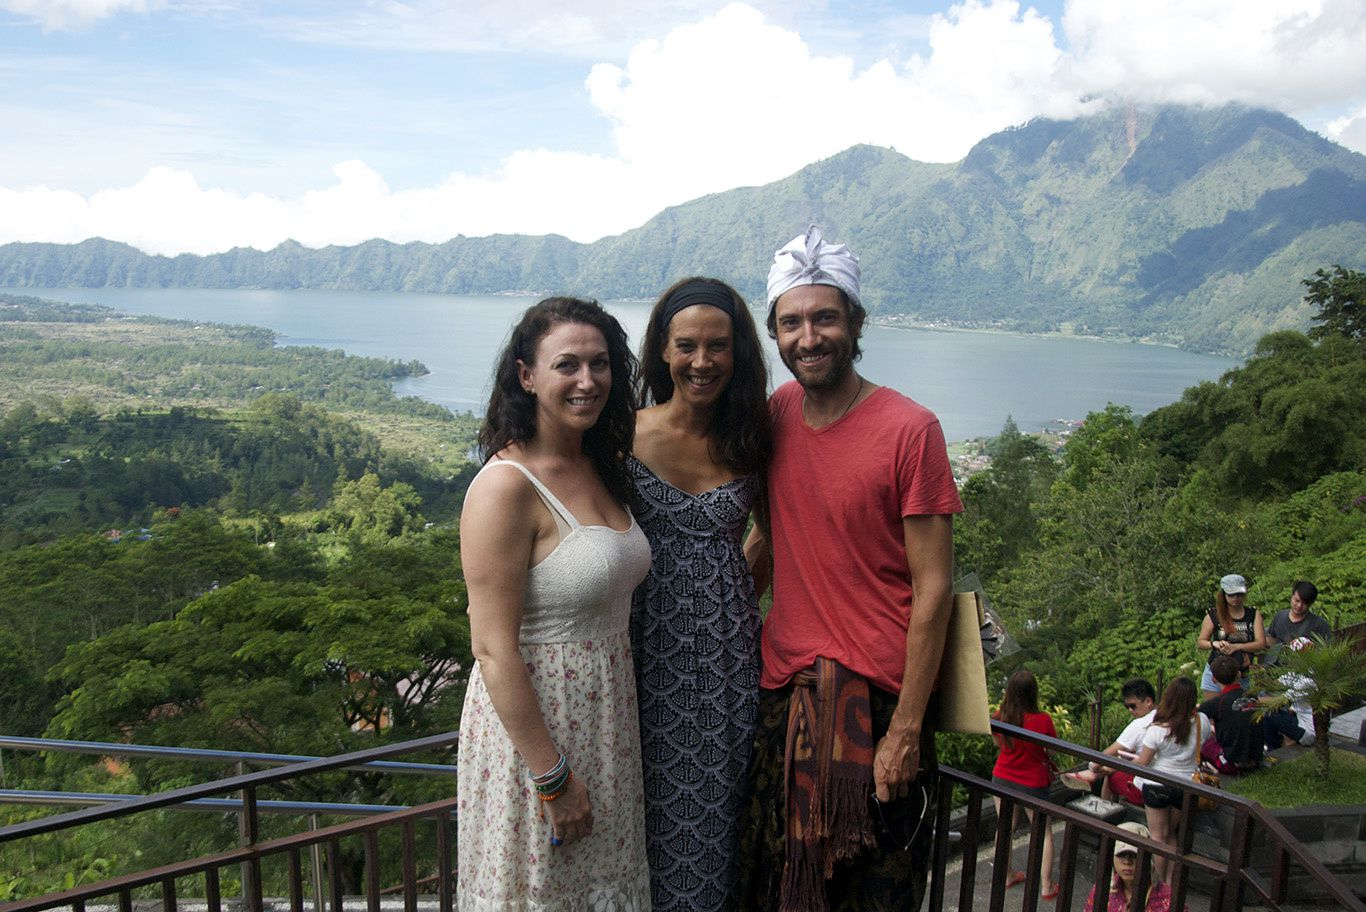 Rice paddies and the Batur volcano with its lake